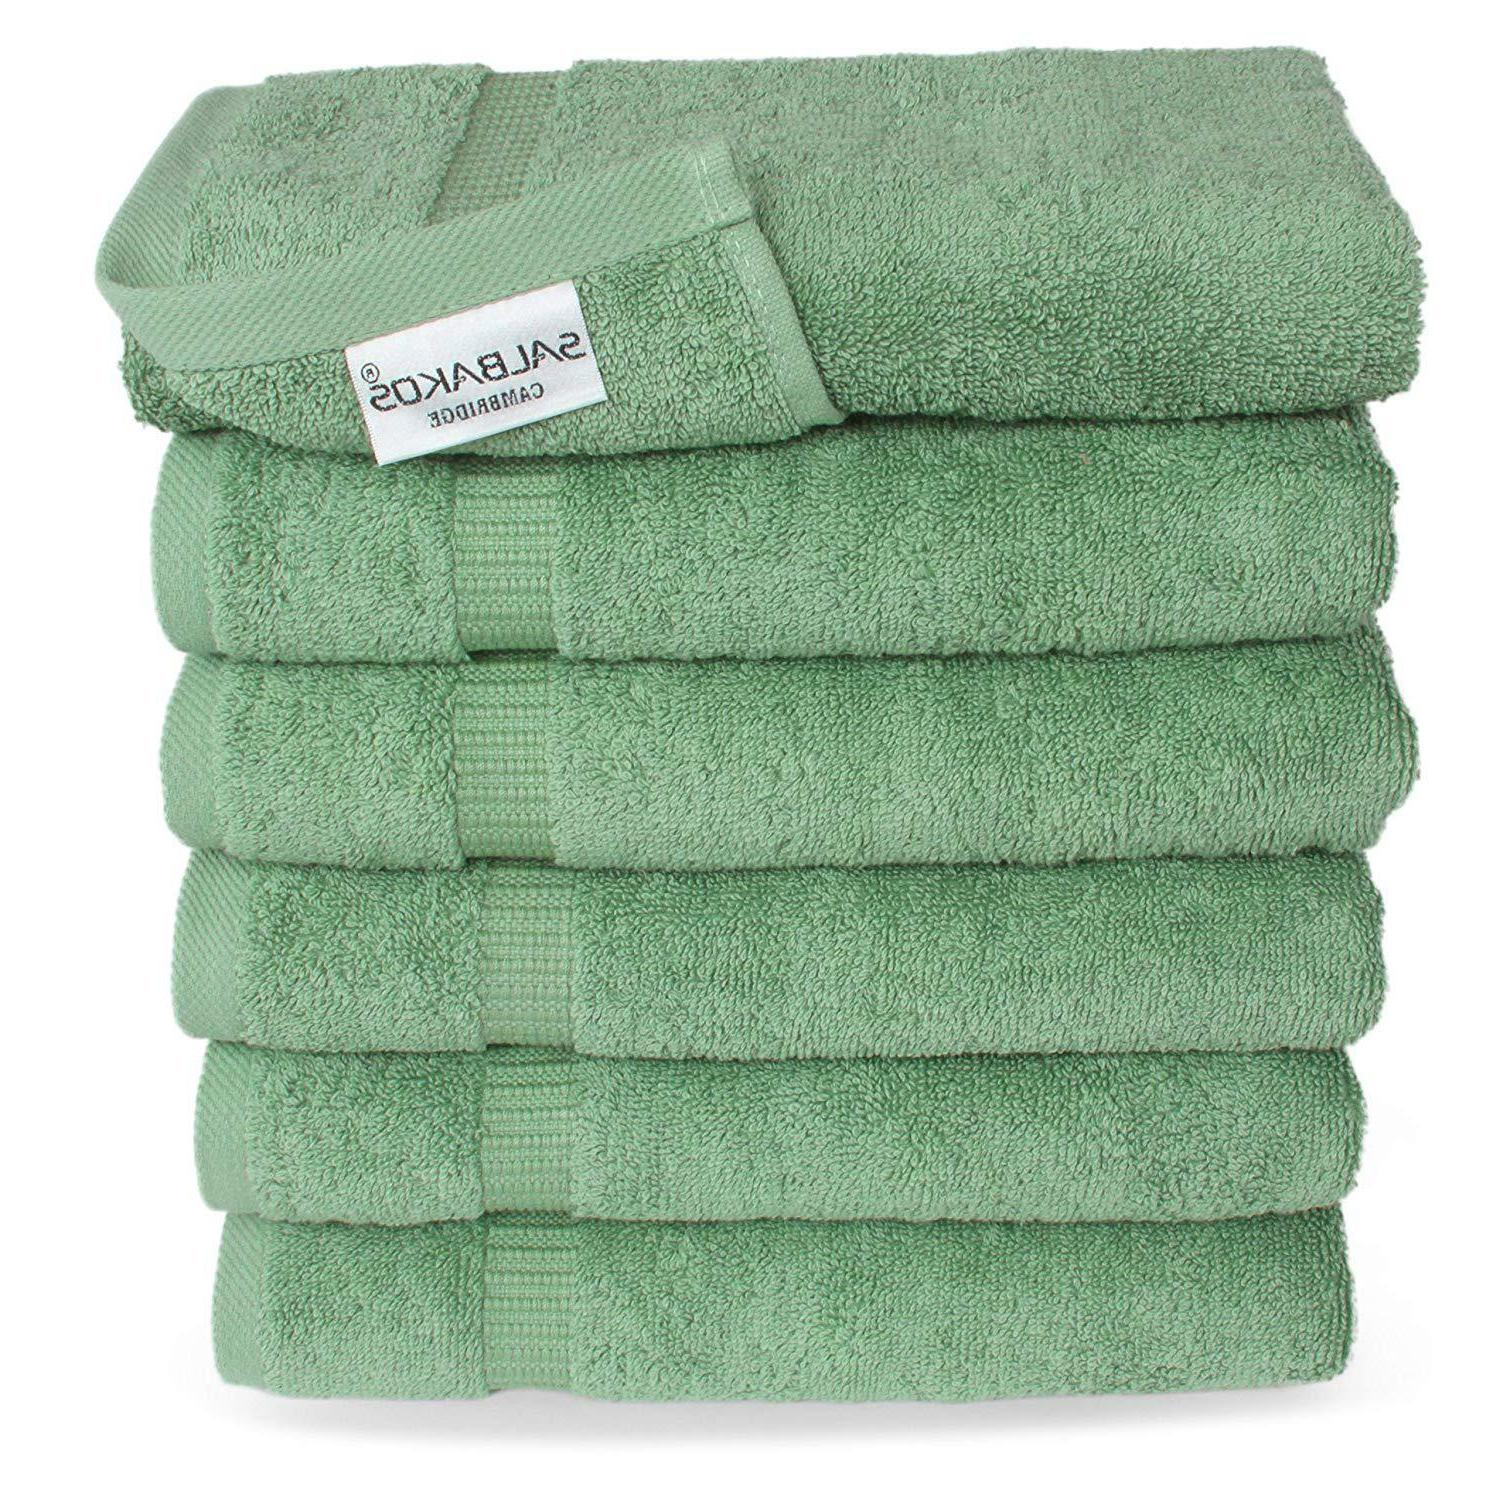 salbakos hand towels for bathroom white cotton